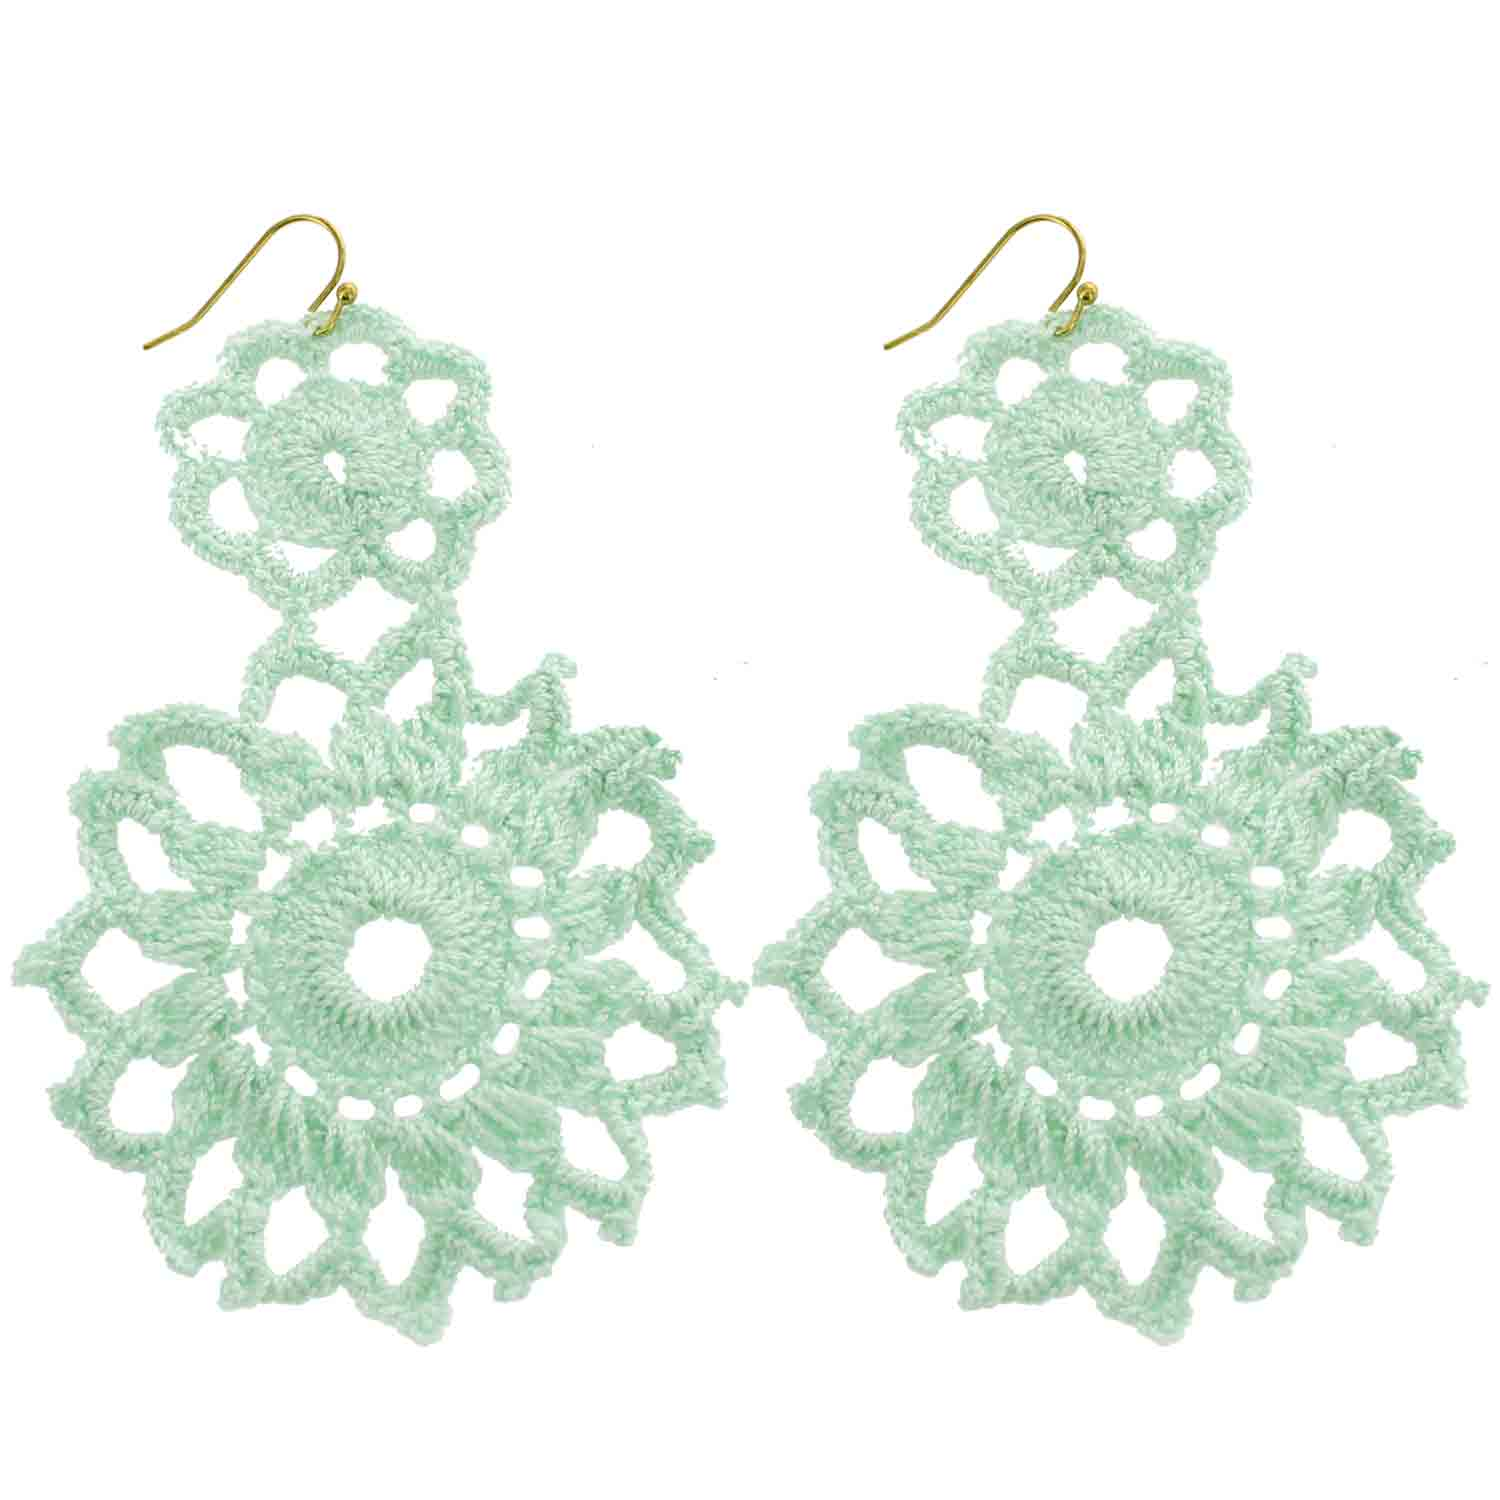 Mint Hand Crochet Double Flower Wholesale Earrings